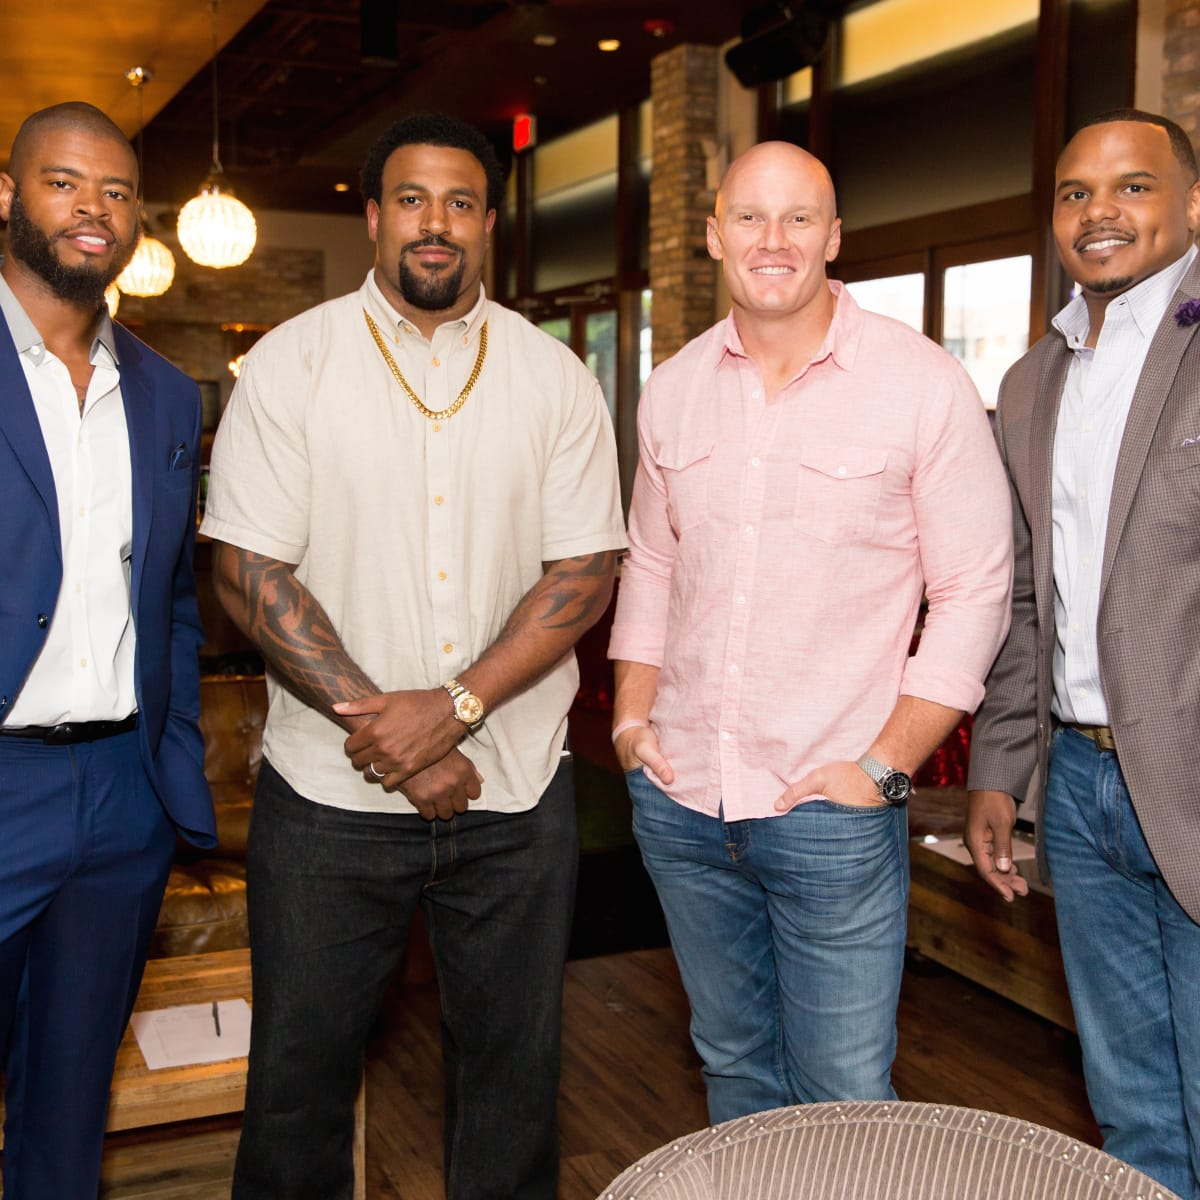 Wade Smith book launch, June 2014, Wade Smith, Duane Brown, Chris Myers, Chester Pitts